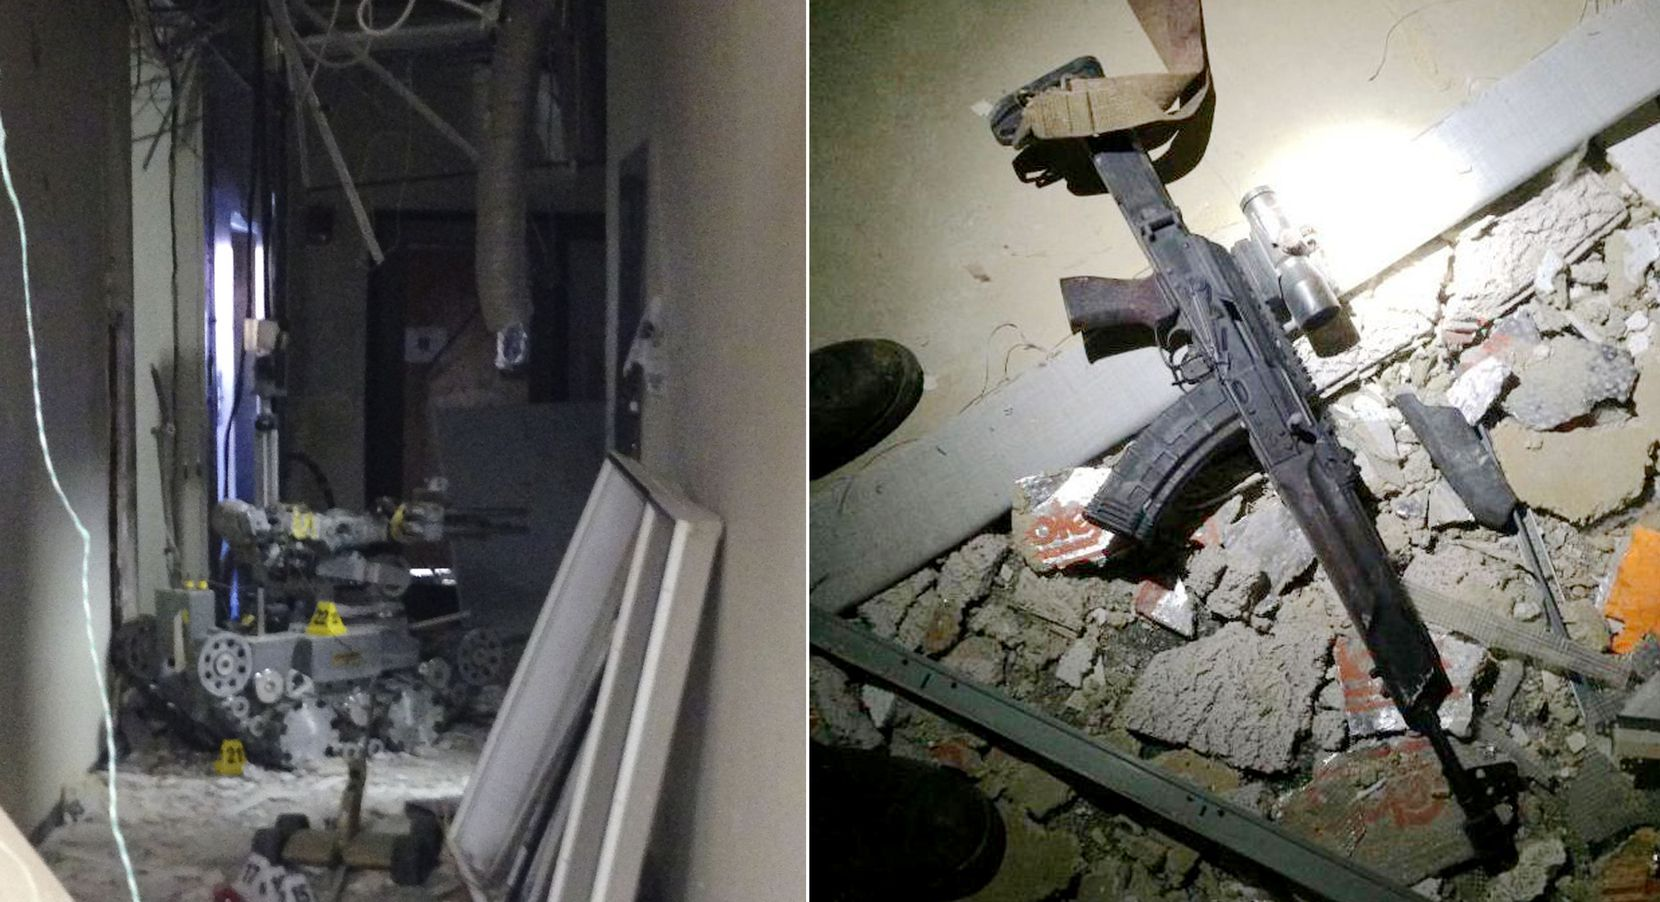 The remote-controlled robot (left) that officers used to detonate a brick of C-4 explosive that killed Micah X. Johnson. The gunman's rifle was left in the rubble at El Centro College the day after the shootings.